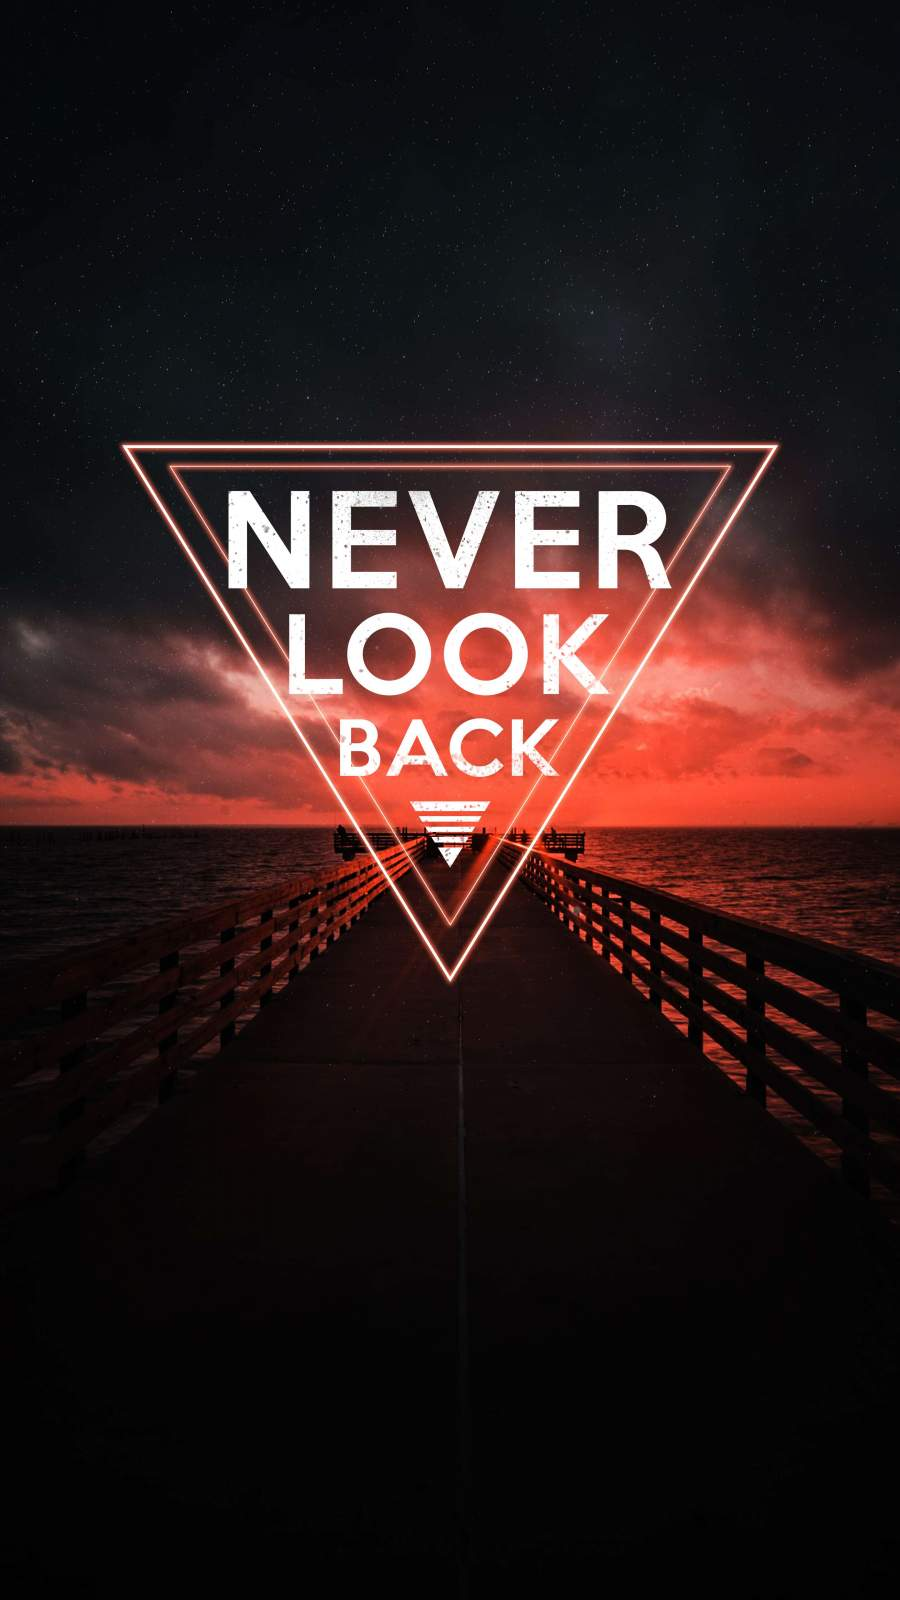 Never Look Back iPhone Wallpaper